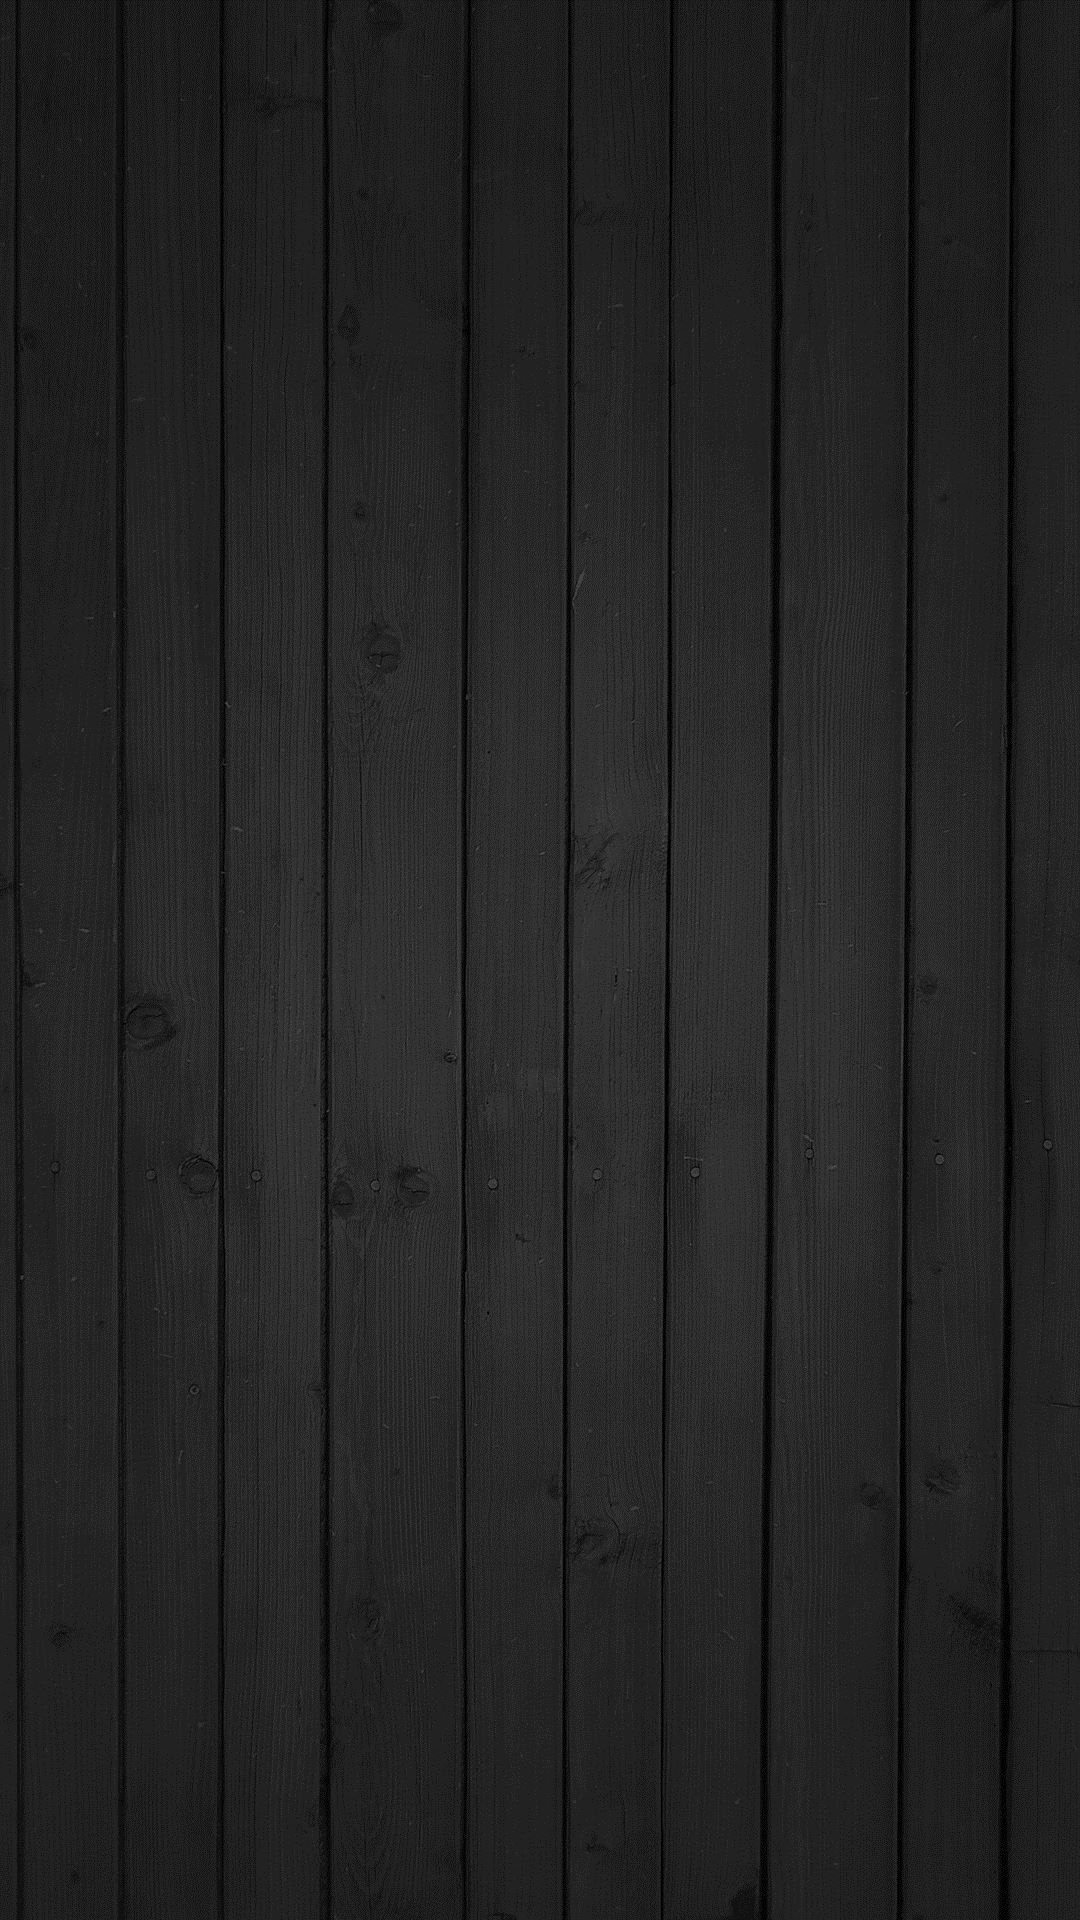 Vertical Black Wood Beams Iphone 6 Plus Hd Wallpaper Wood Iphone Wallpaper Black Wallpaper Iphone Wood Wallpaper